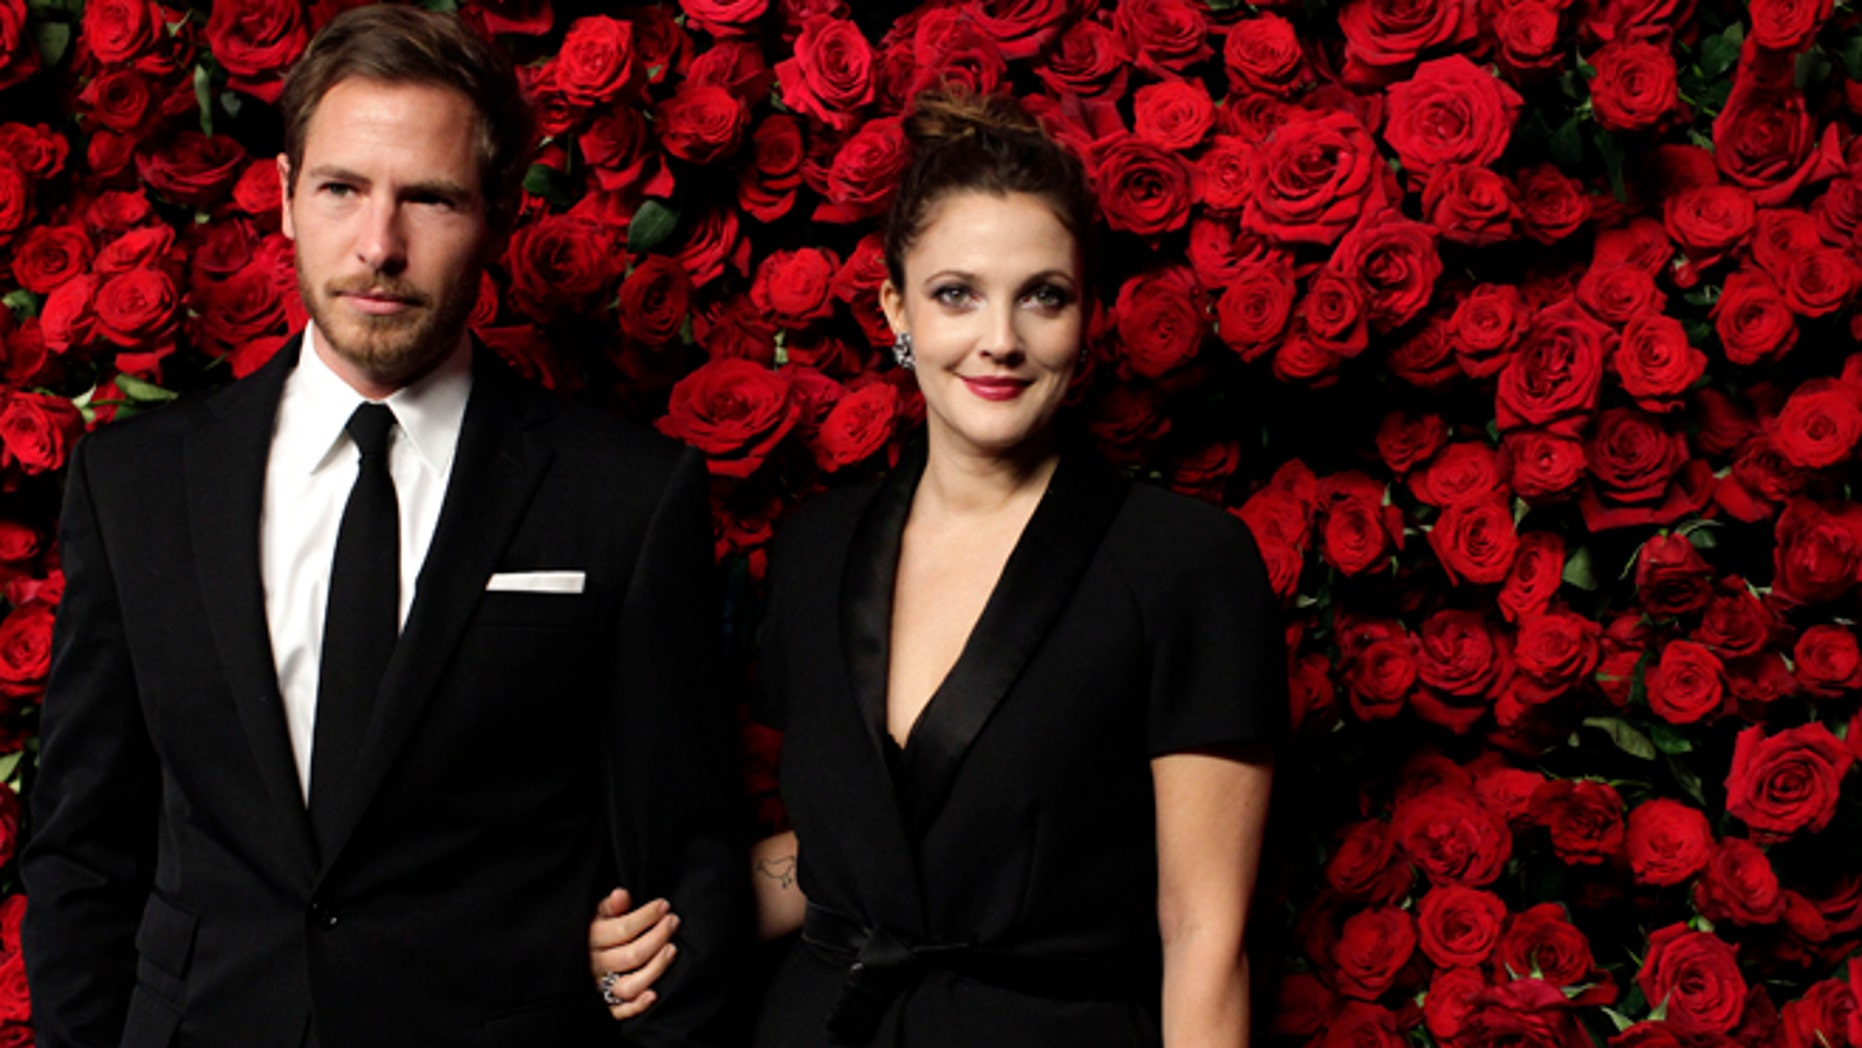 November 15, 2011. Actress Drew Barrymore (R) and Will Kopelman (L) attend the Museum of Modern Art's fourth annual Film Benefit in New York.